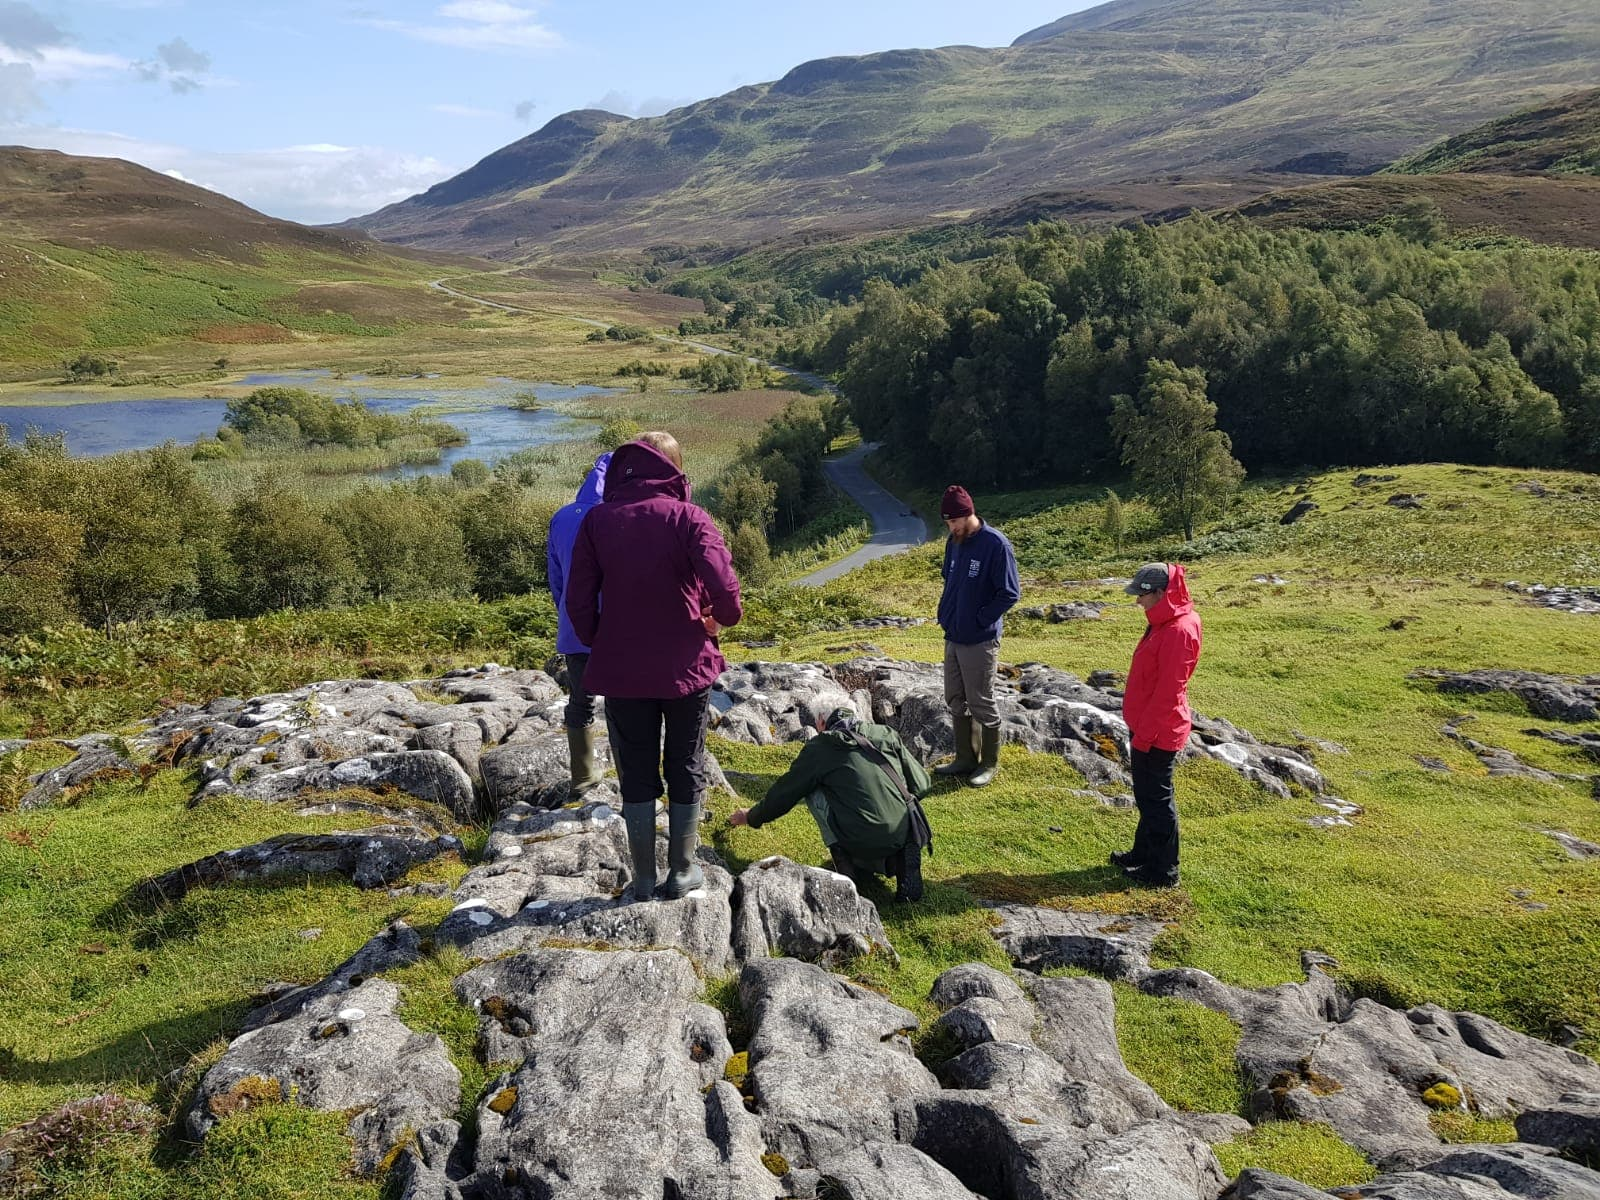 The geomorphology of the Perthshire reserves